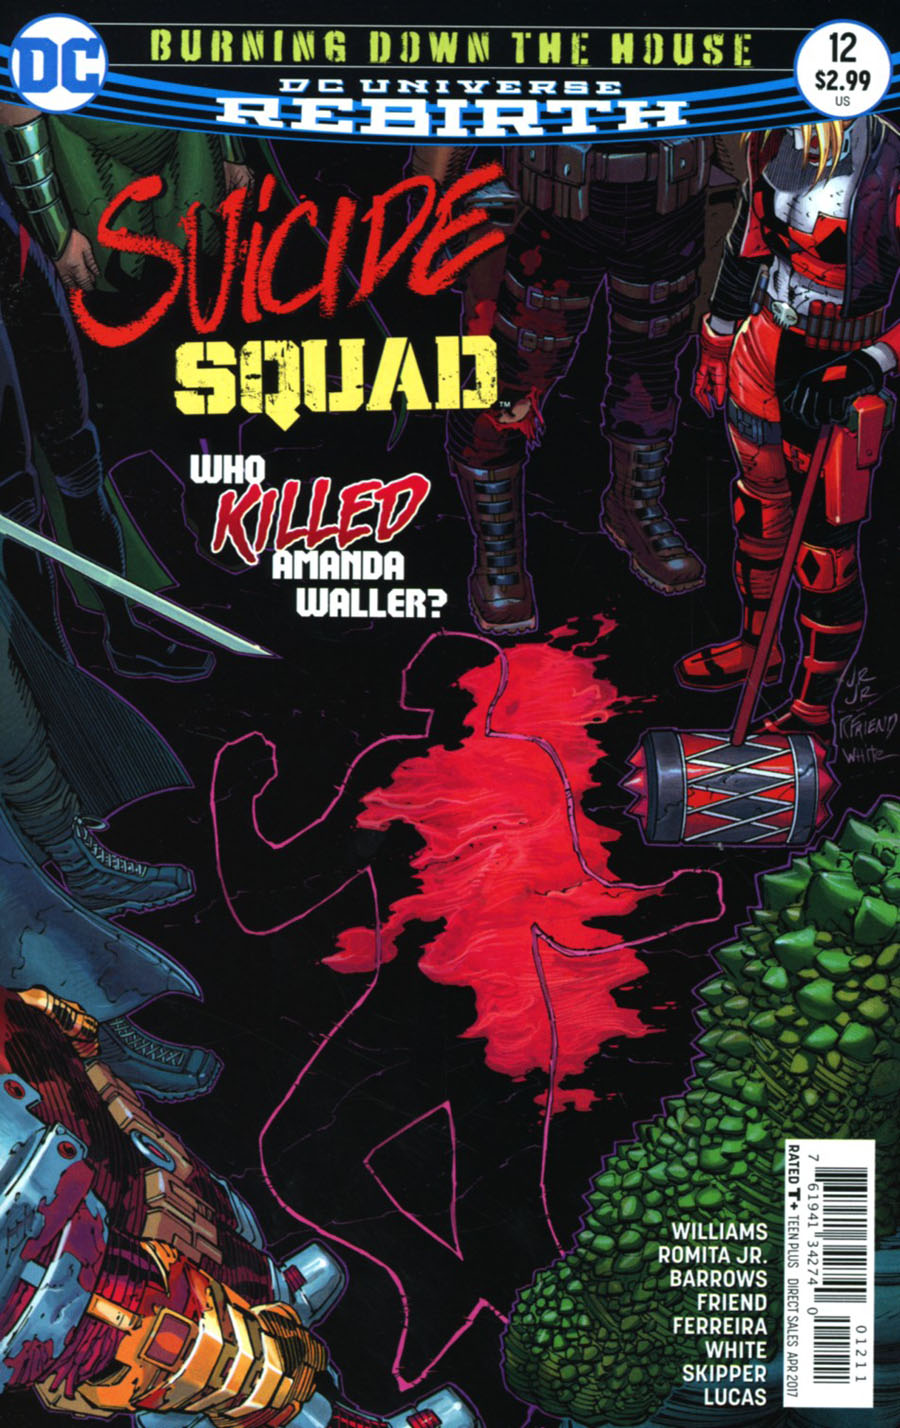 Suicide Squad Vol 4 #12 Cover A Regular John Romita Jr Cover